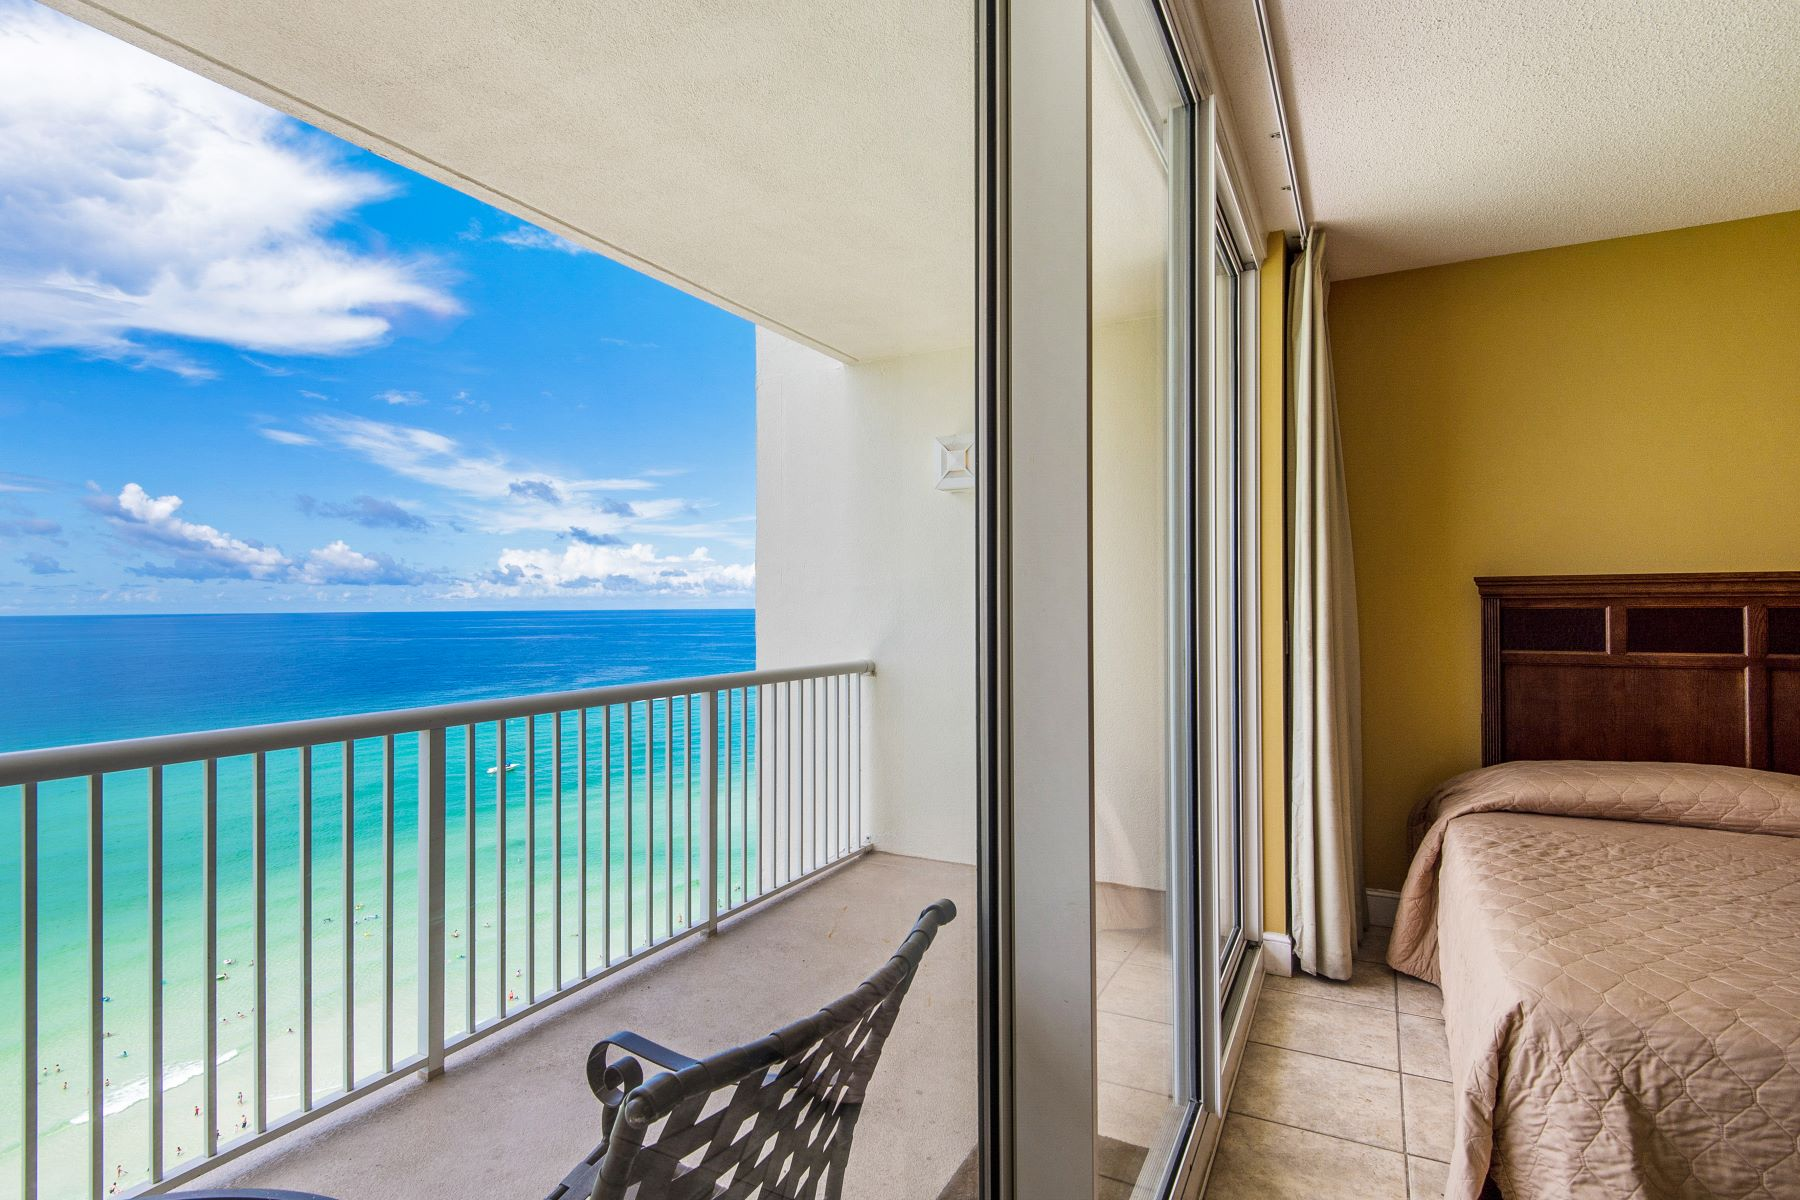 Condominiums for Sale at Furnished Gulf-Front Studio with Rental Potential 10901 Front Beach Road 1609, Panama City Beach, Florida 32407 United States